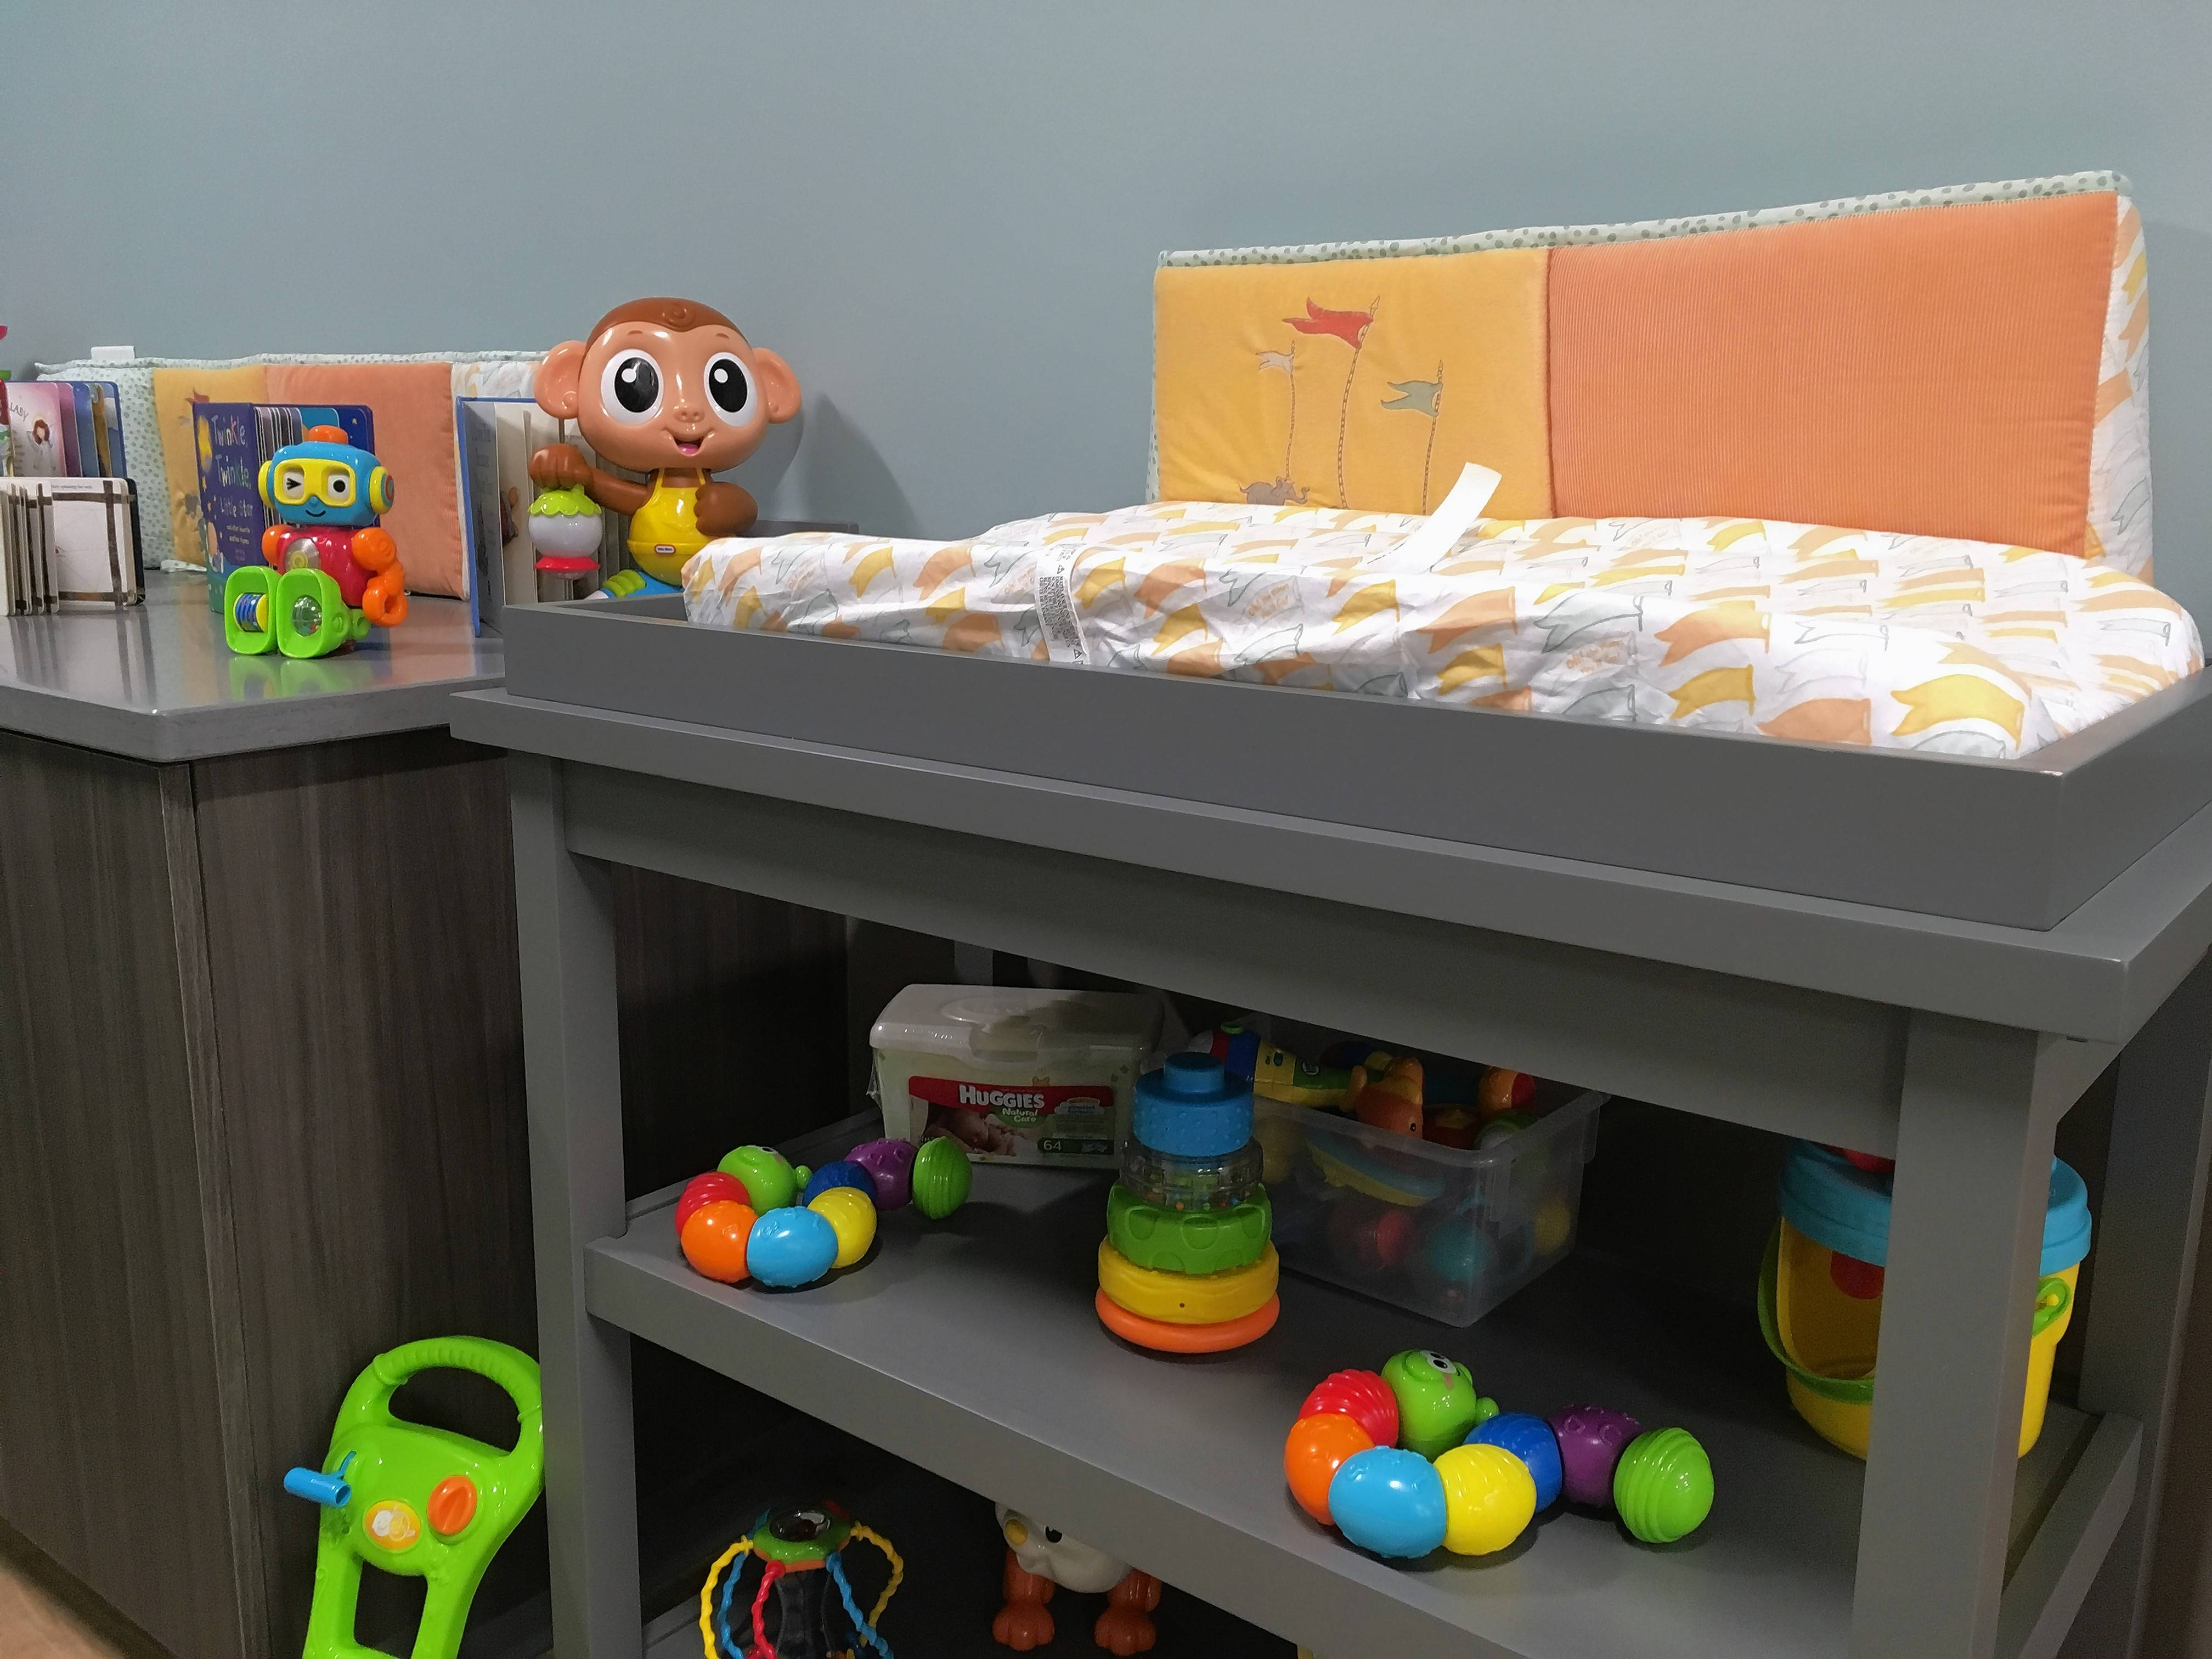 ... Rolling Meadows Courthouse. Barbara Vitello   Staff Photographer.  Children From Infant To Age 16 Can Use A New, Free Day Care Program